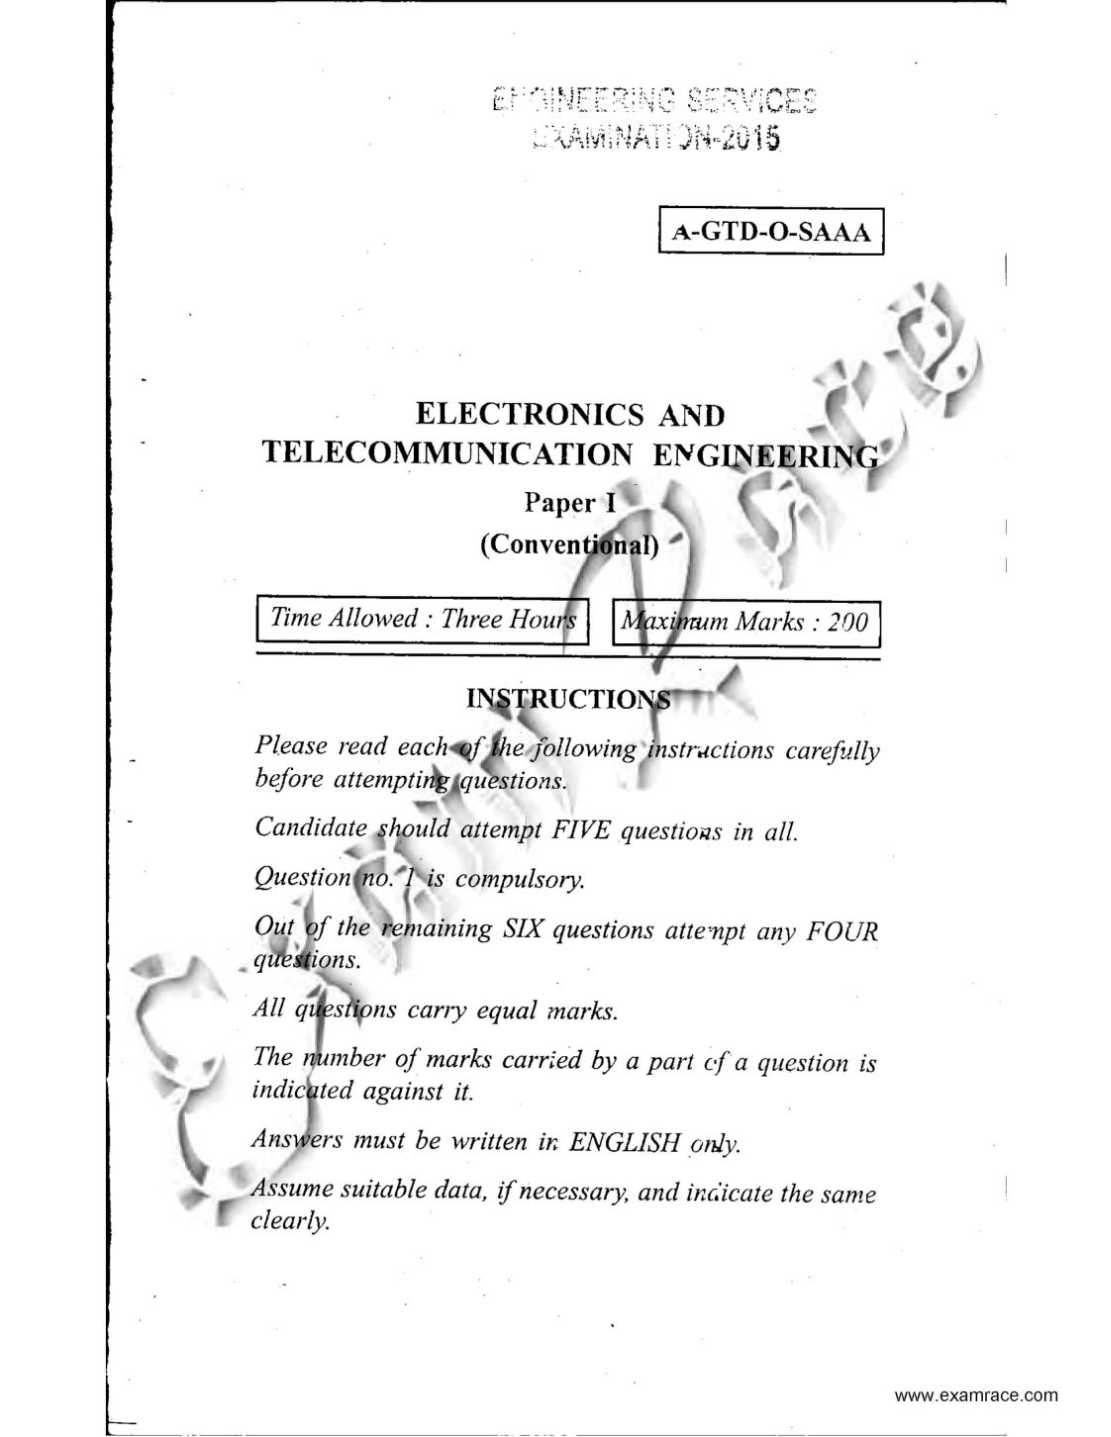 Essay about electronics